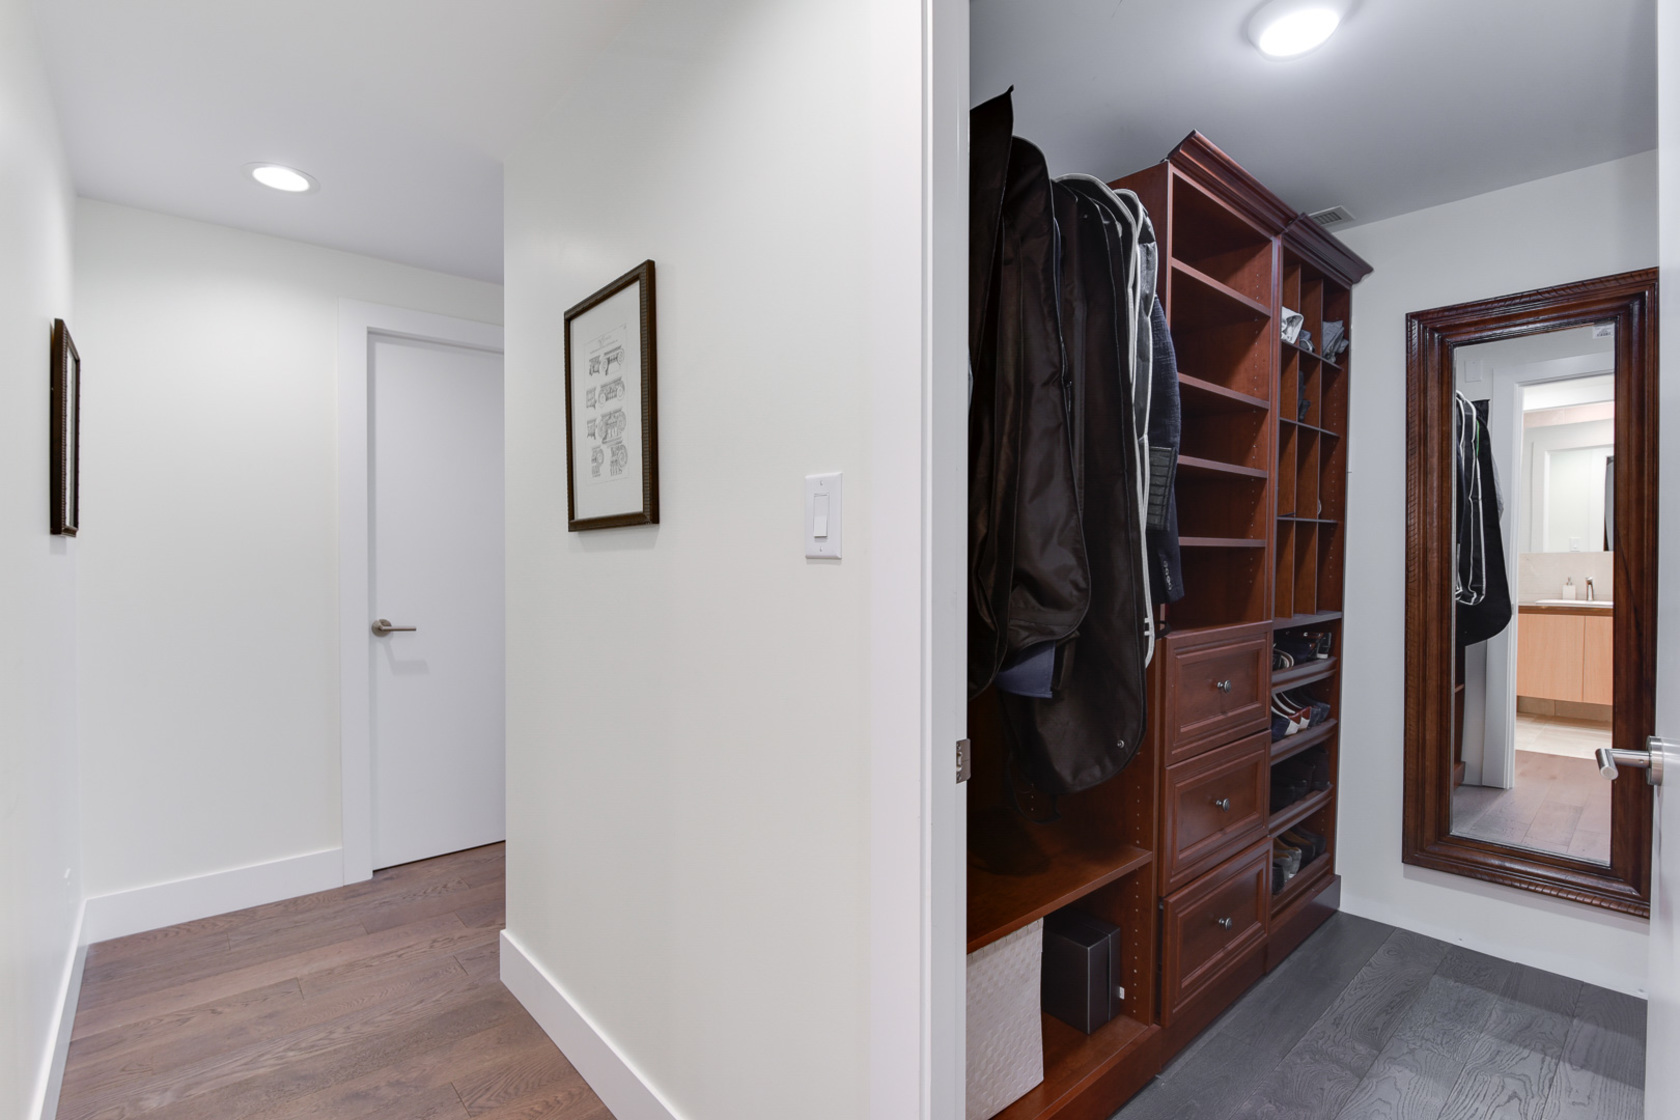 20-1-of-1 at 807 - 633 Kinghorne Mews, Beach Crescent (Yaletown), Vancouver West